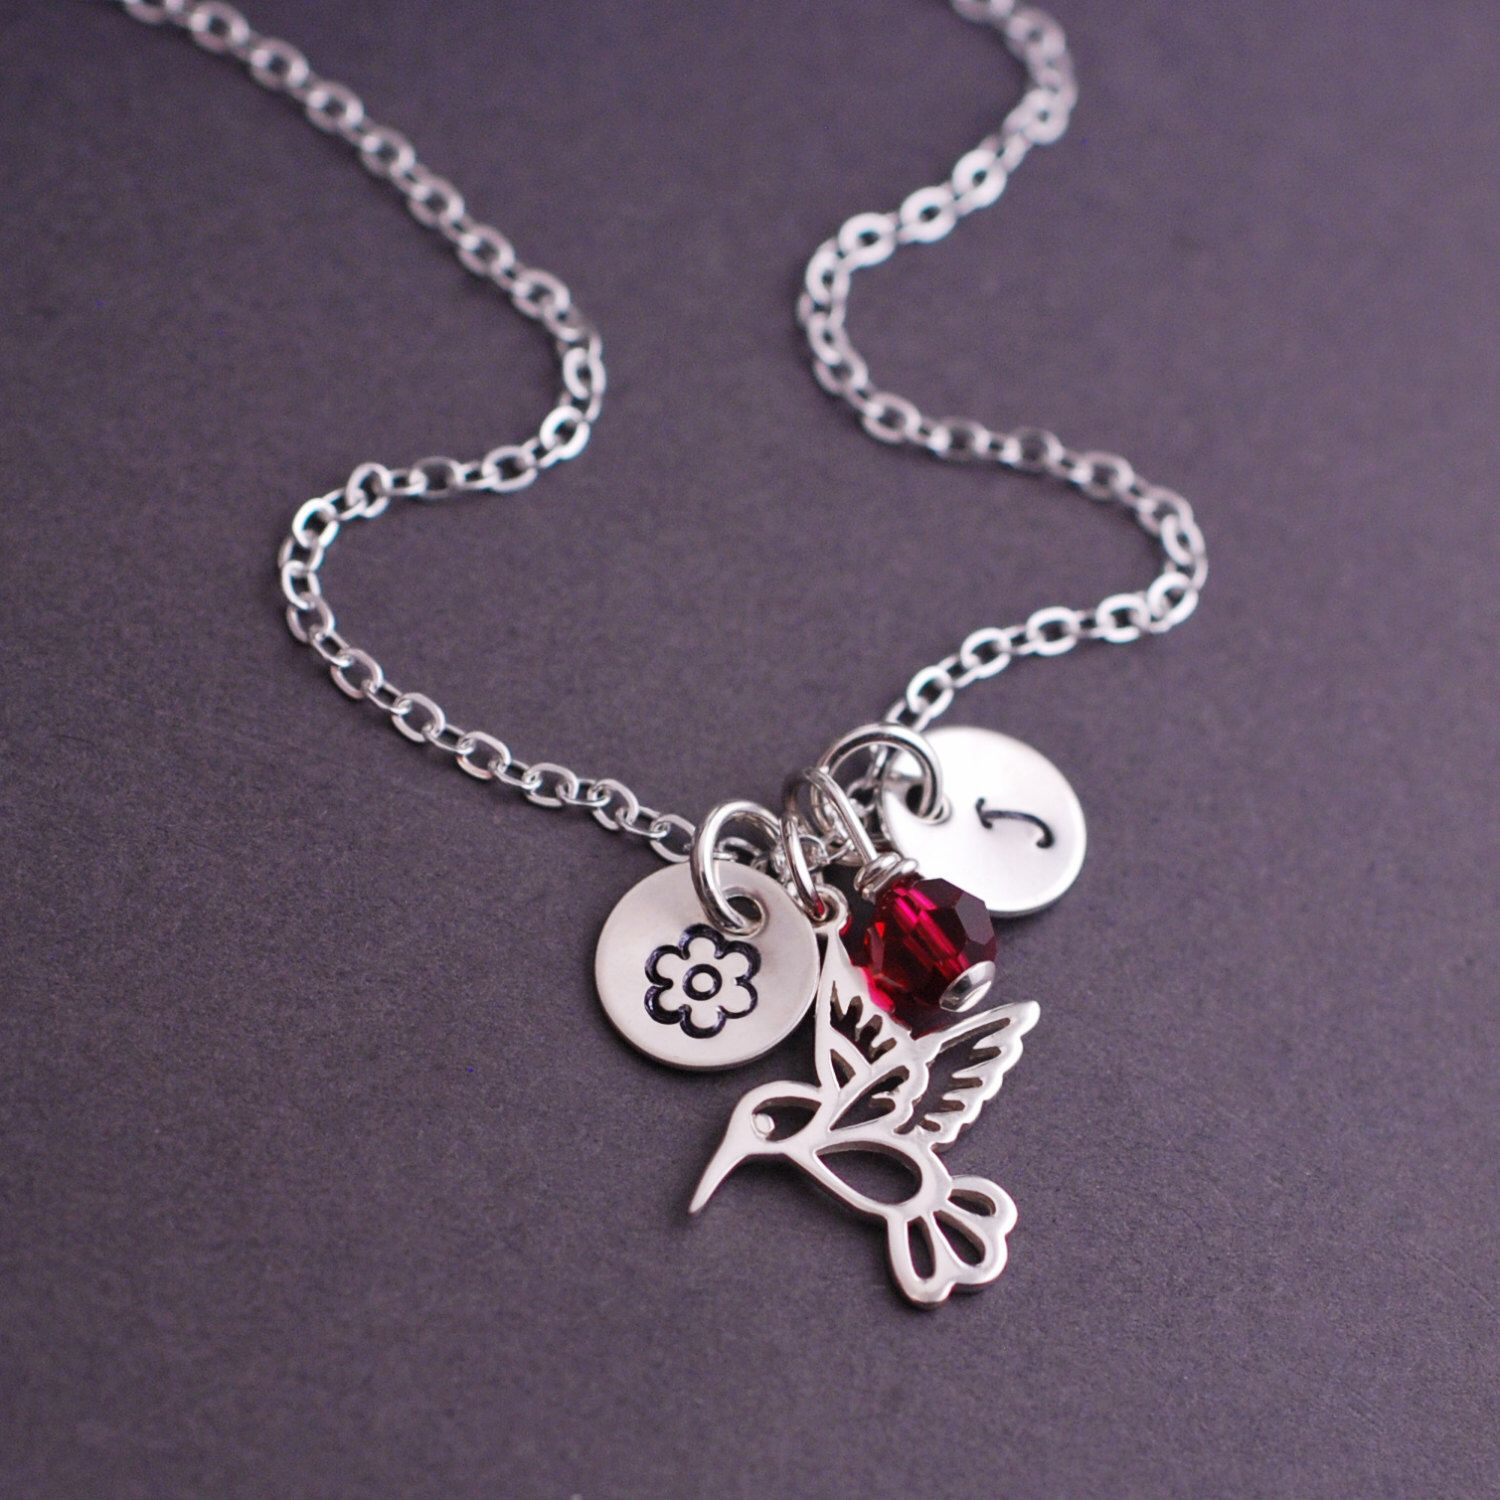 7443d9591 Hummingbird Necklace, Personalized Hummingbird Jewelry with Ruby Red Crystal  in Sterling Silver by georgiedesigns on